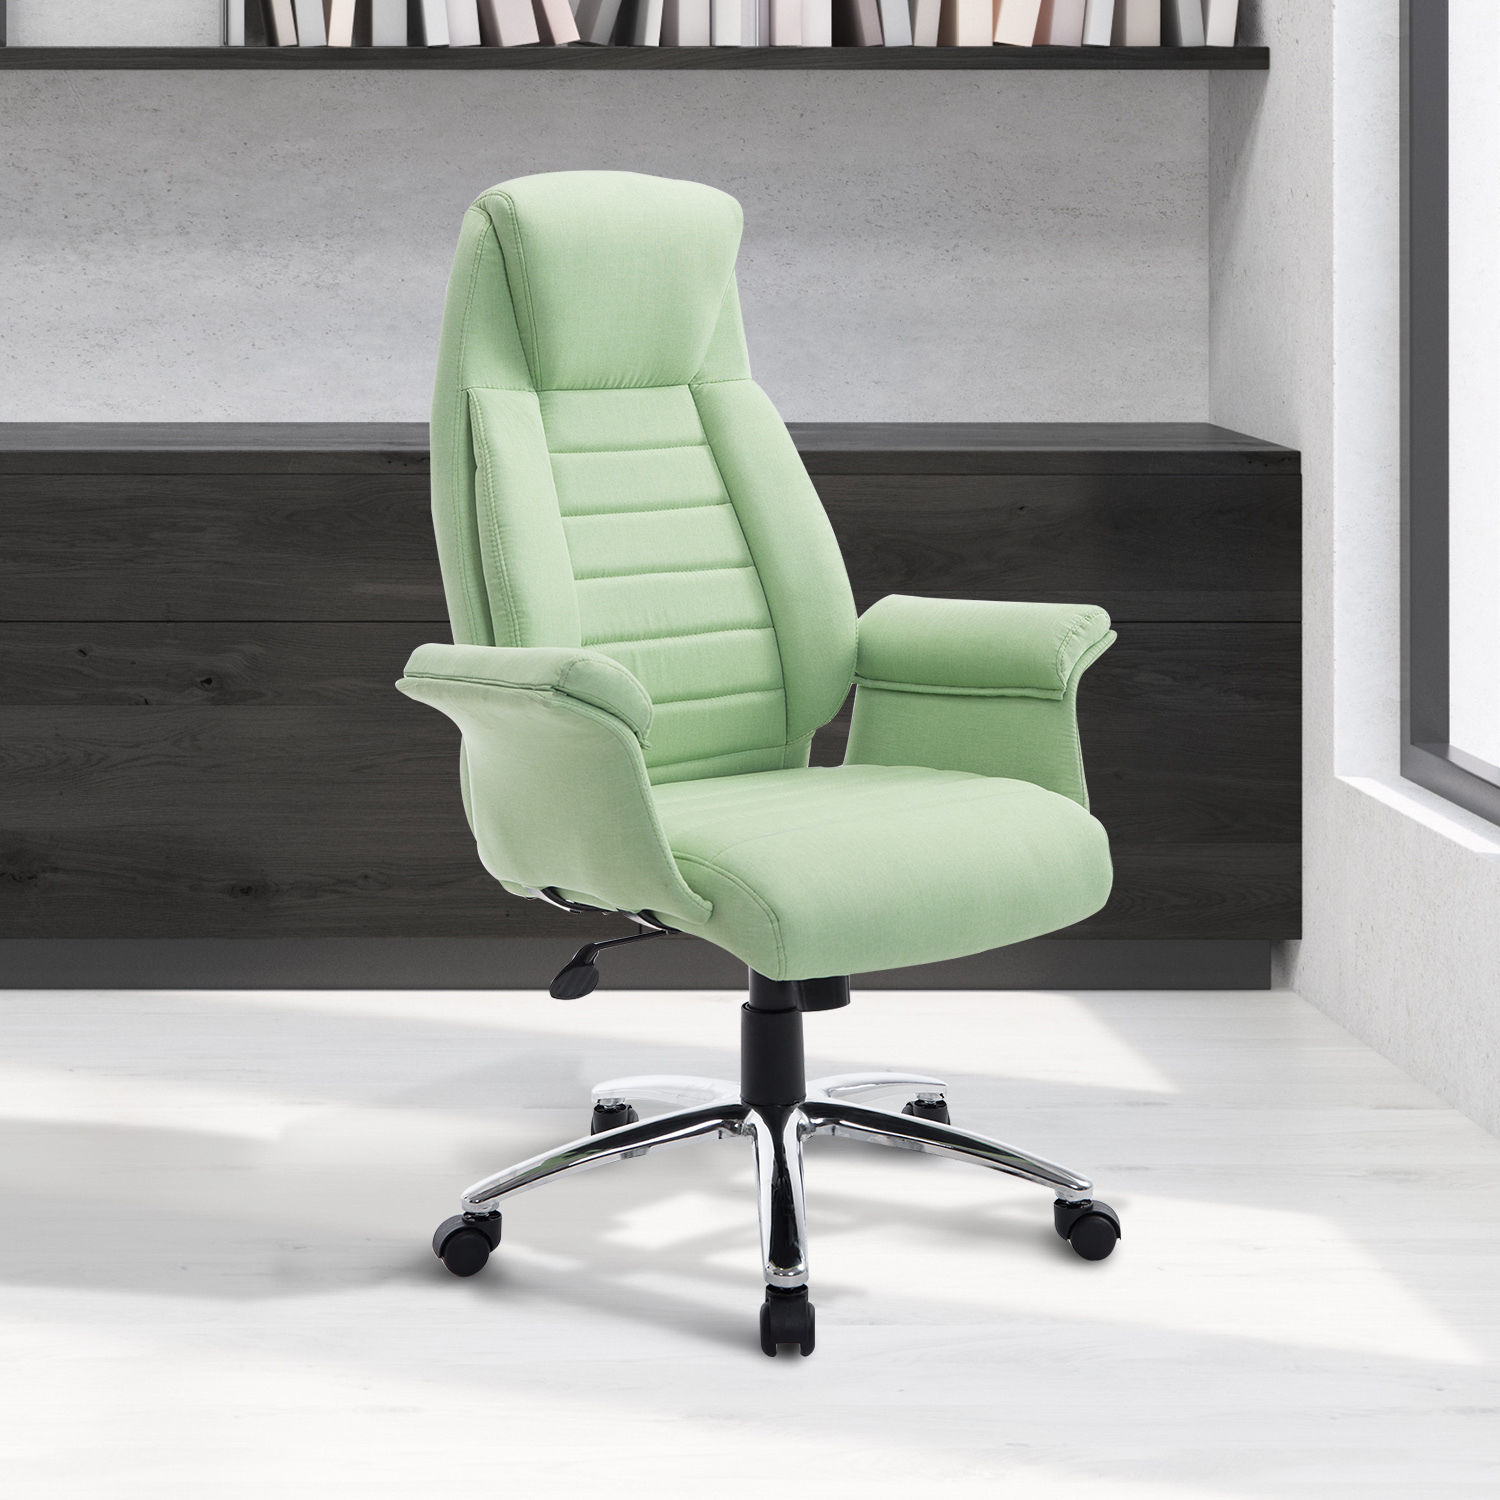 Comfortable Computer Chairs Rolling Executive Chair Office High Back Padded Swivel